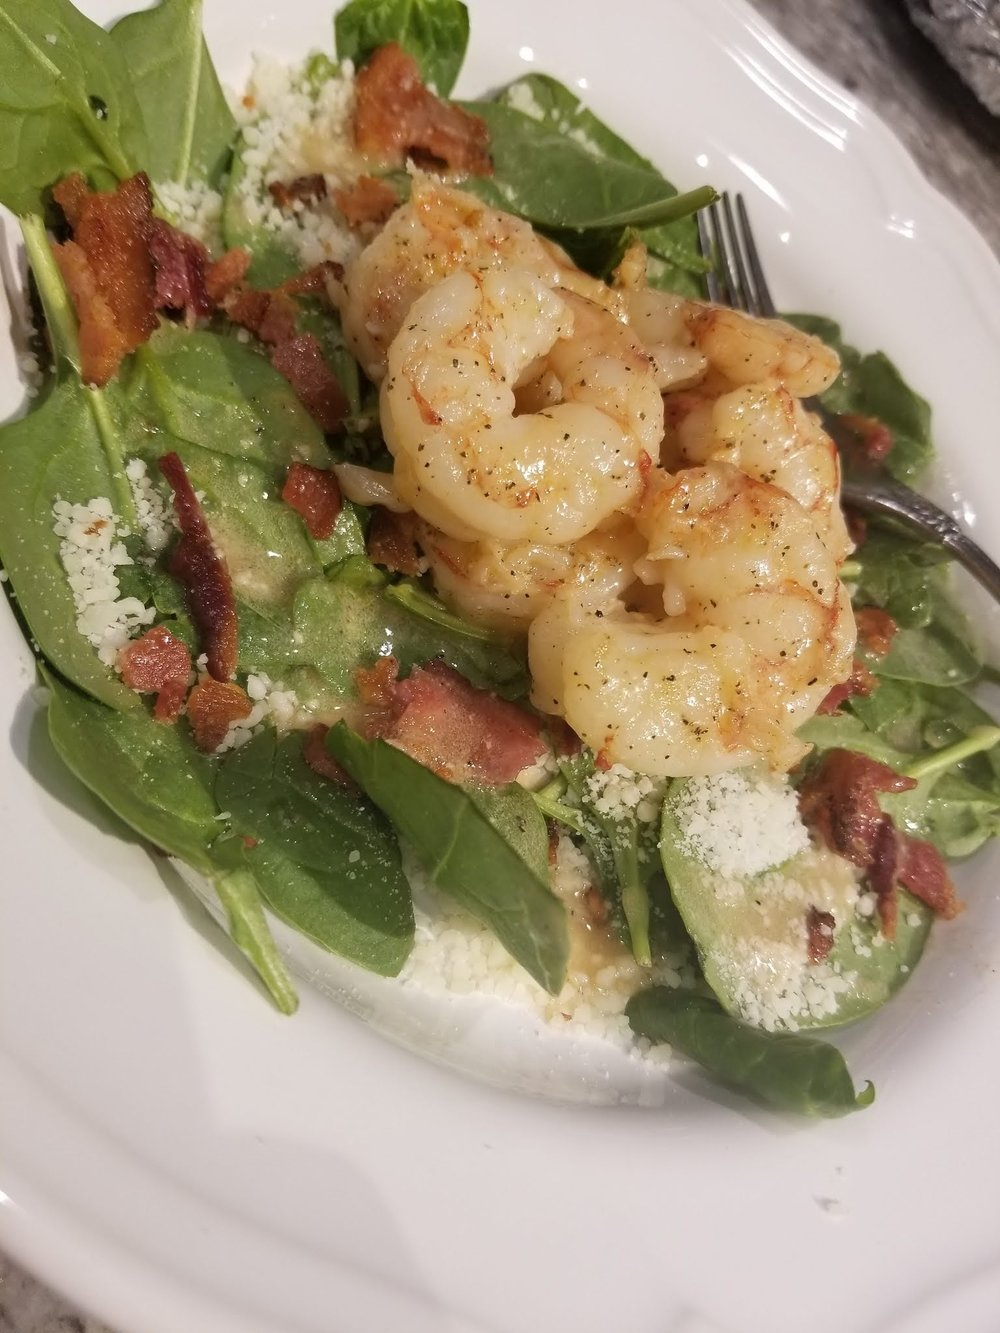 Hot Bacon Fat Spinach Salad - With Shrimp